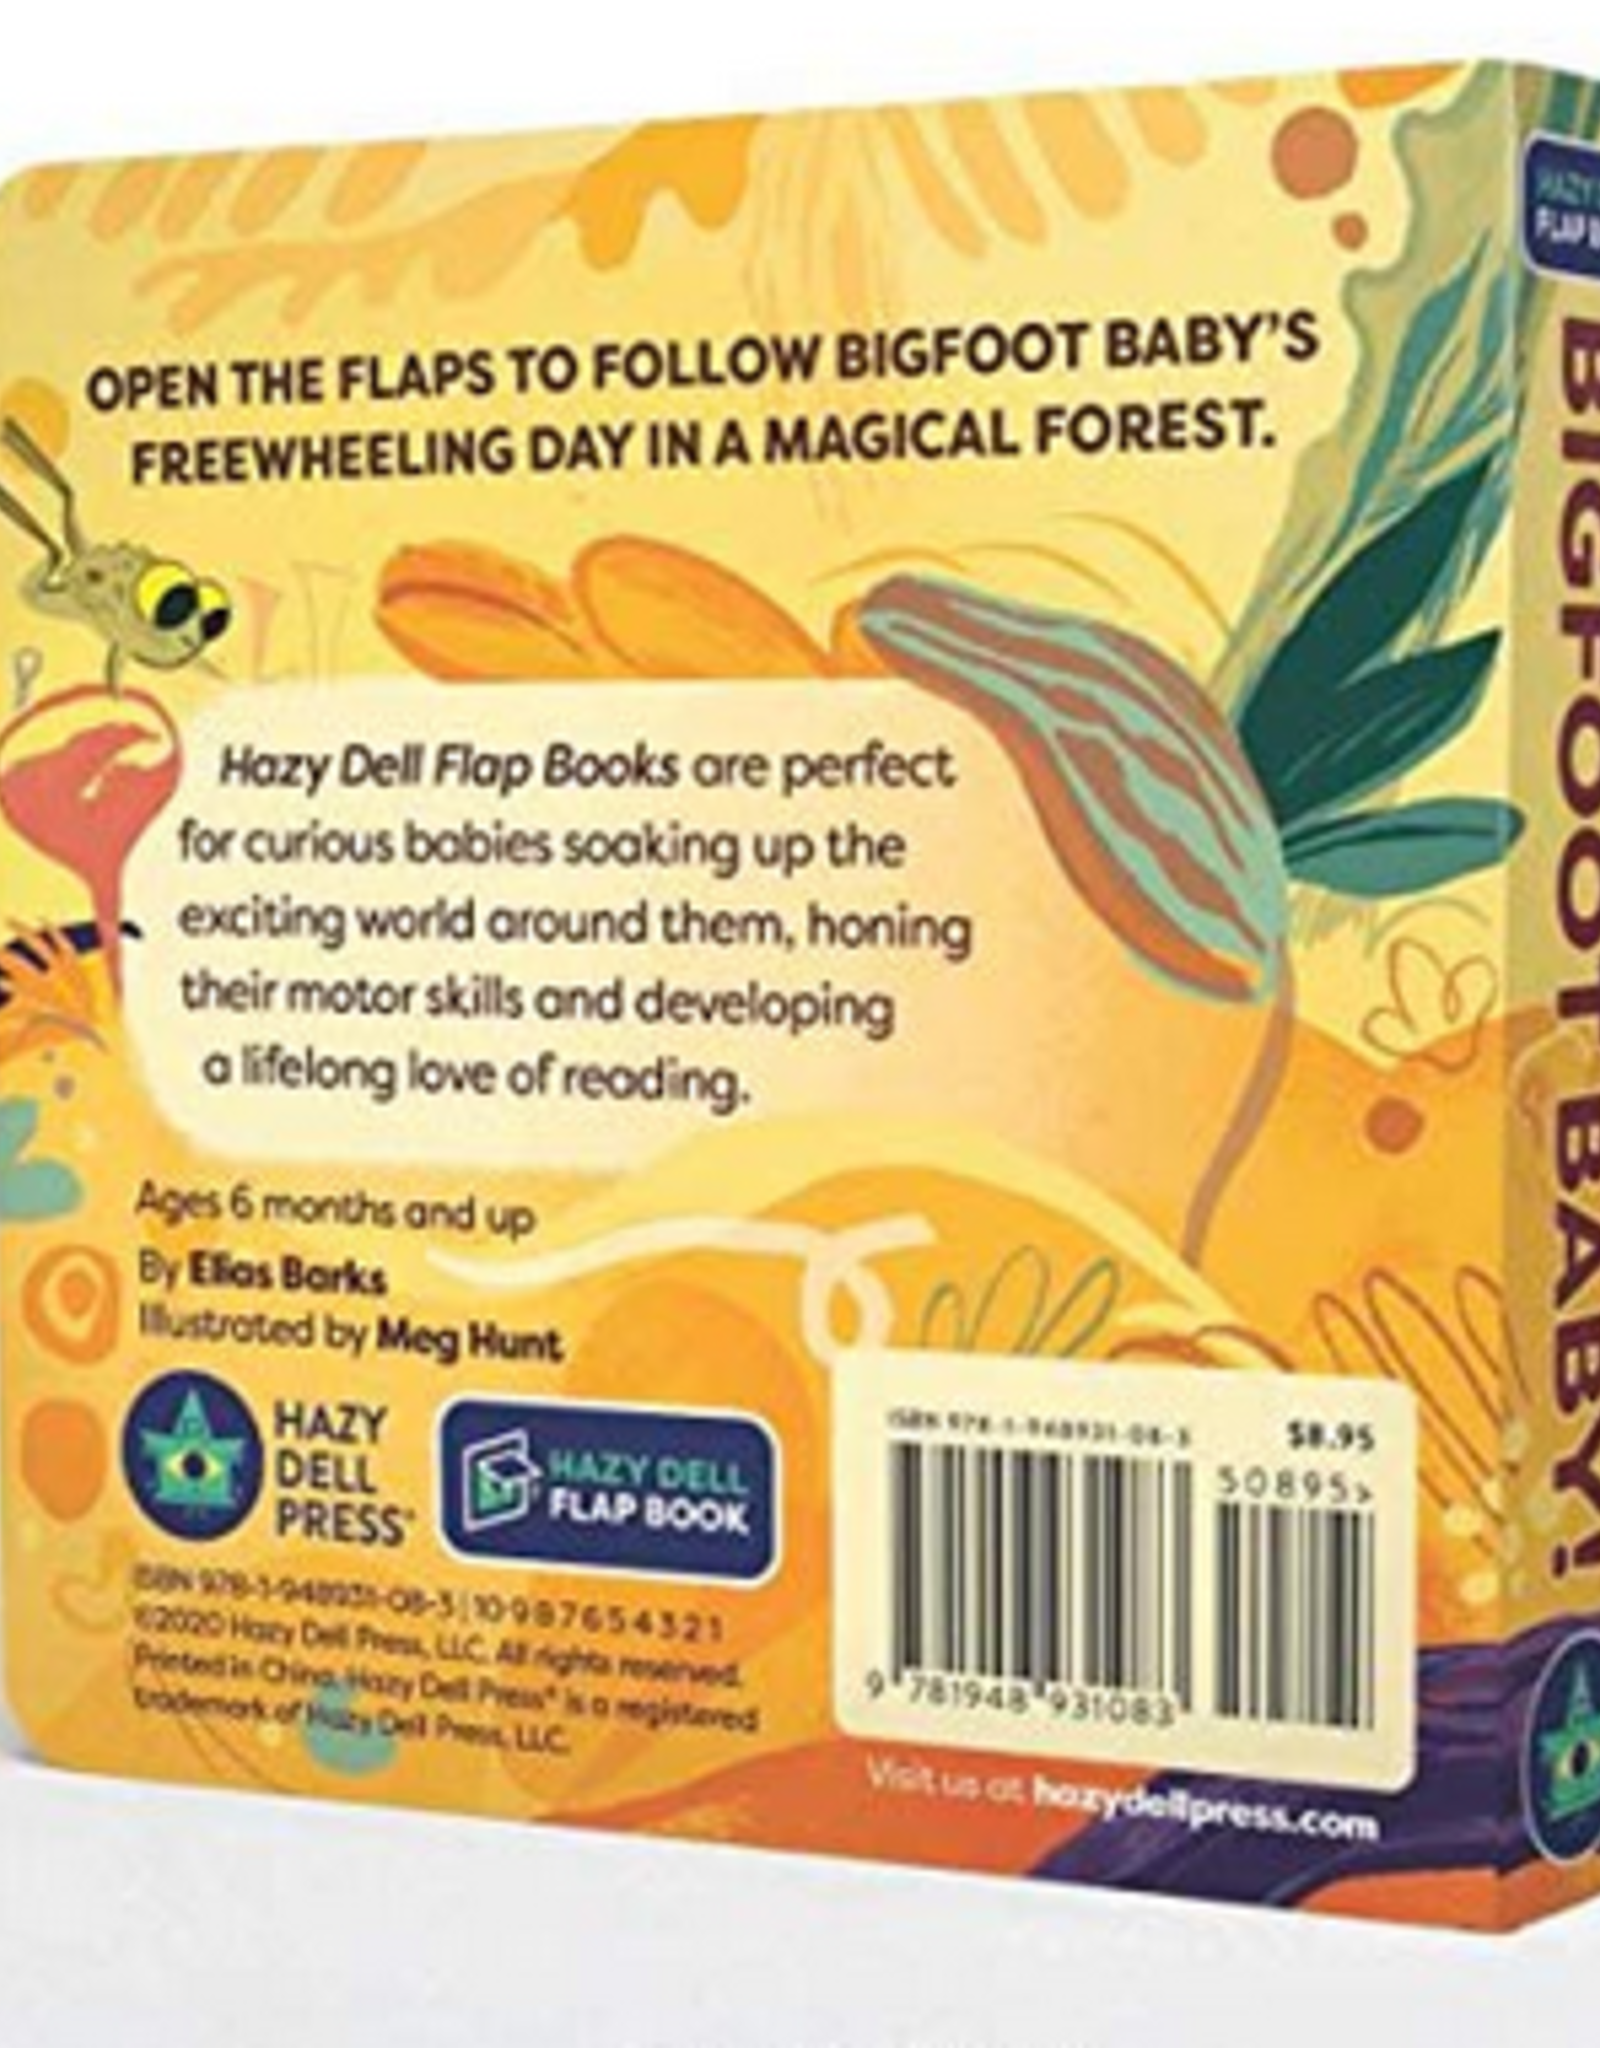 Hazy Dell Press Bigfoot Baby